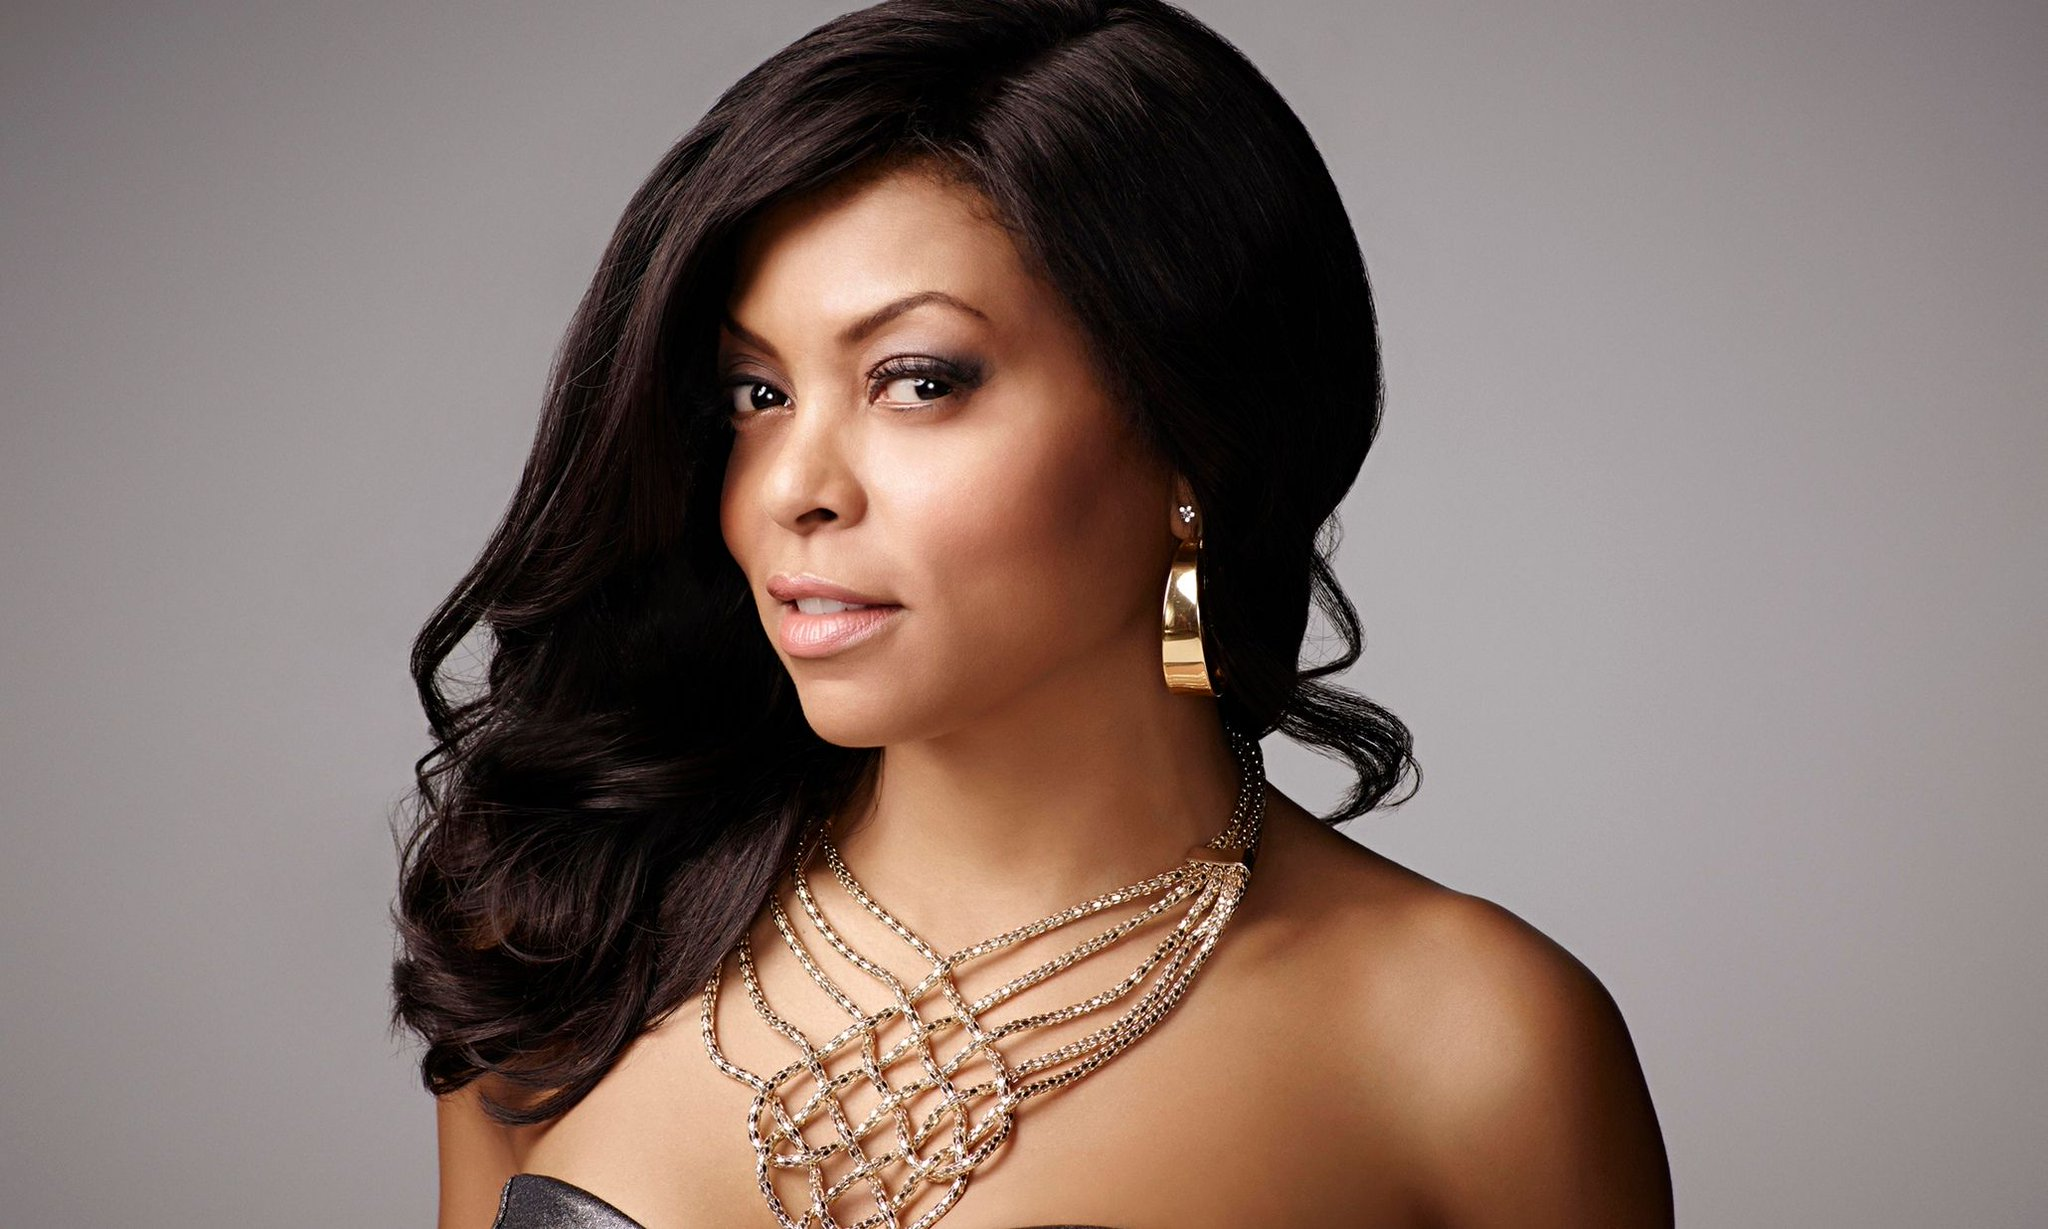 Taraji P. Henson turns 47 today. Help us wish her a happy birthday!